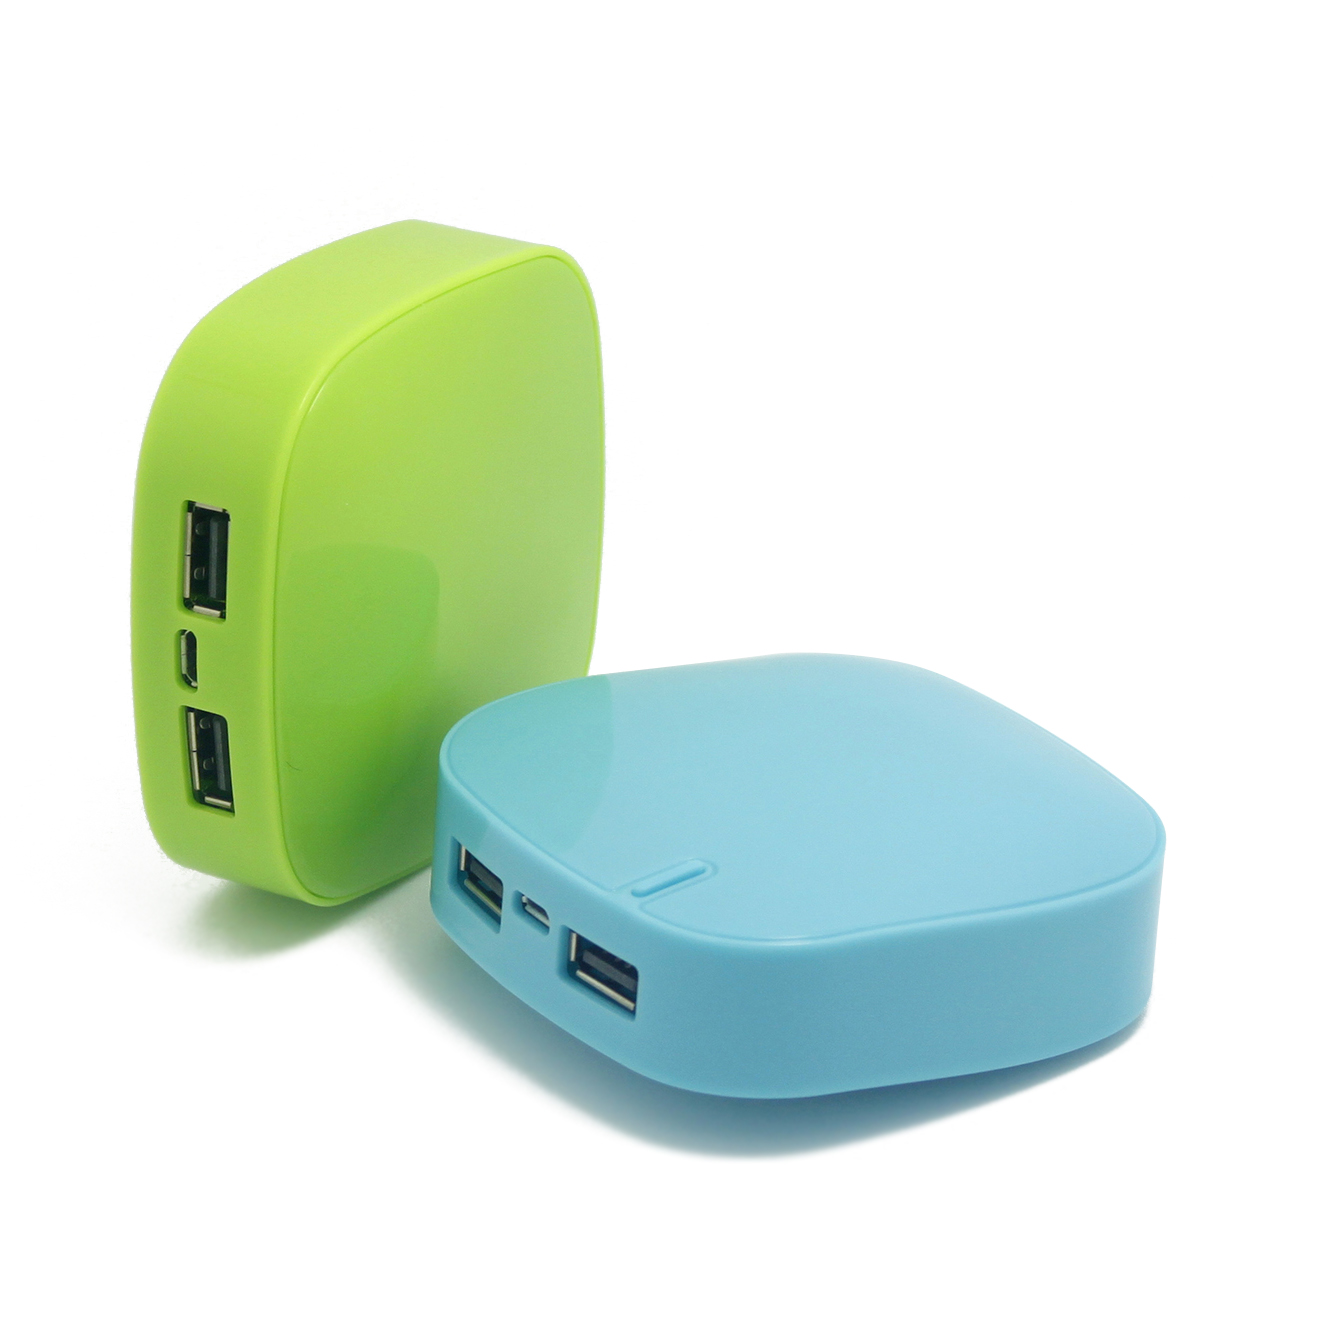 Bolan 4800mAh Portable External Battery for Smartphones and other Digital Devices